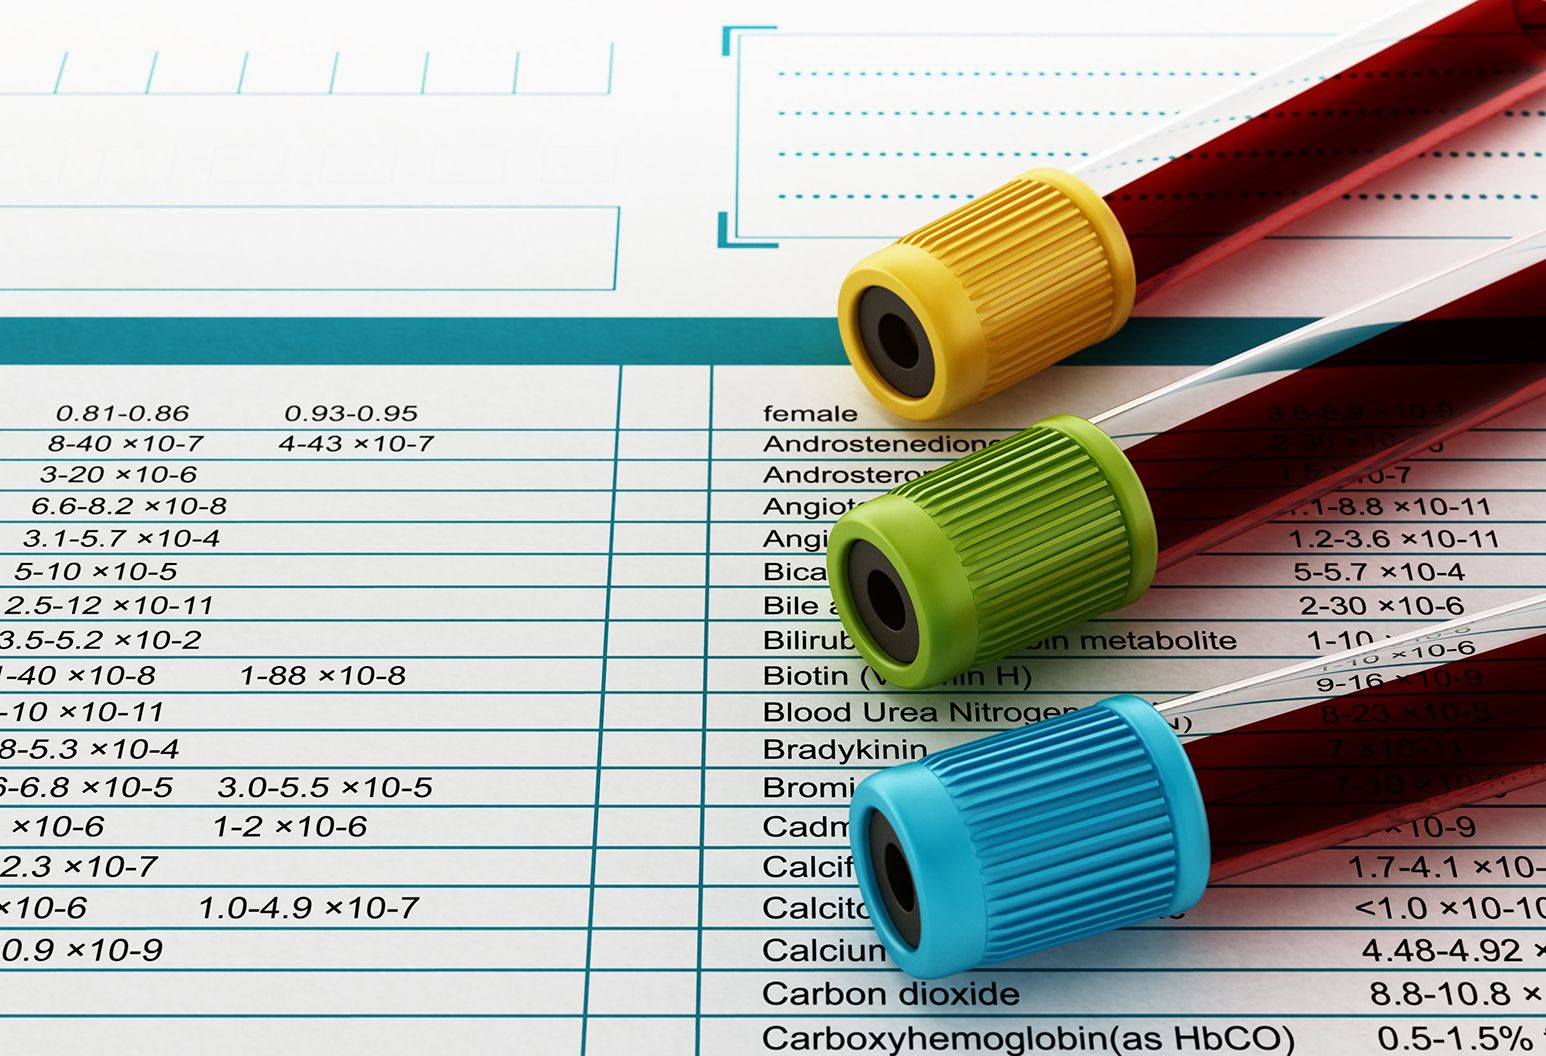 Blood test tubes with multi-colored lids standing on medical documents.